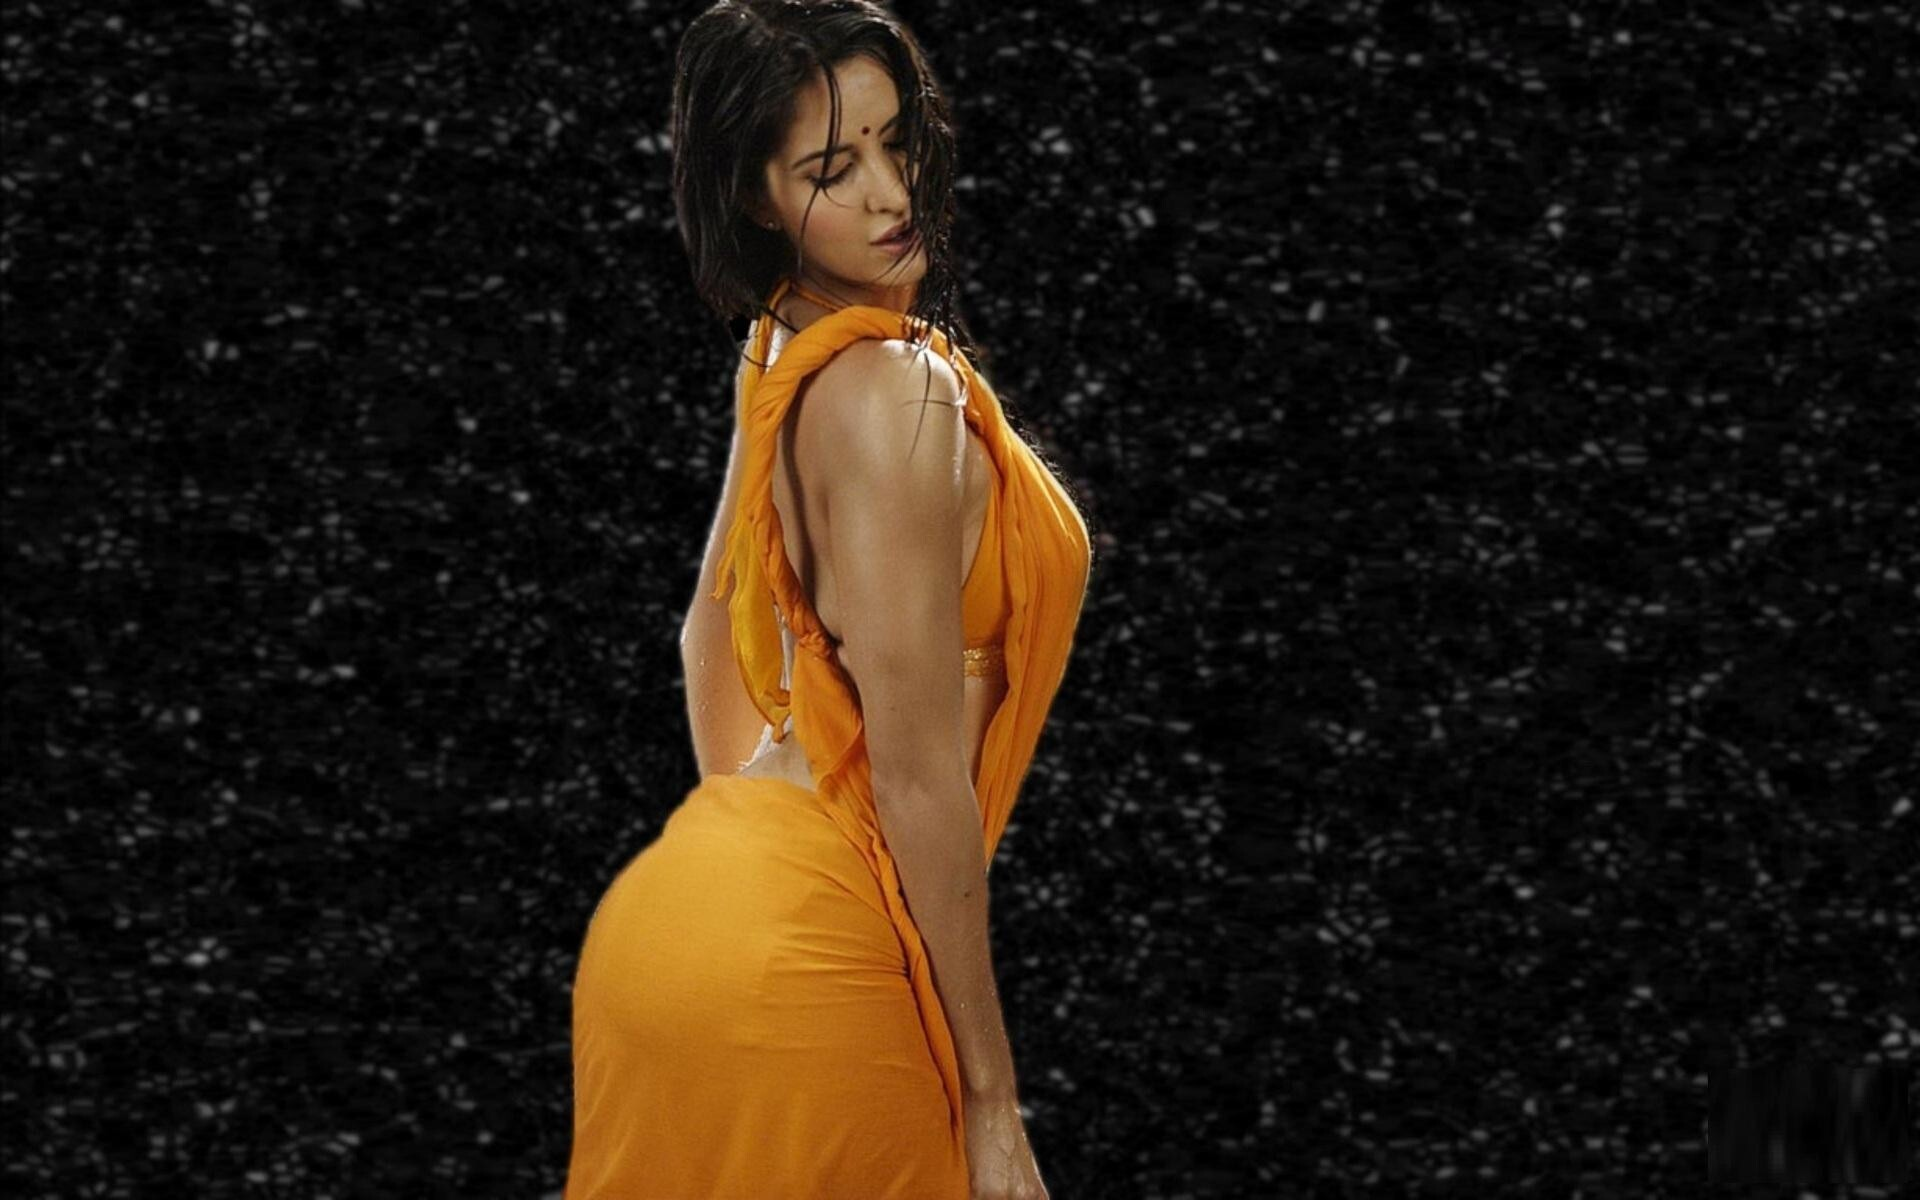 katrina kaif hot and - photo #23